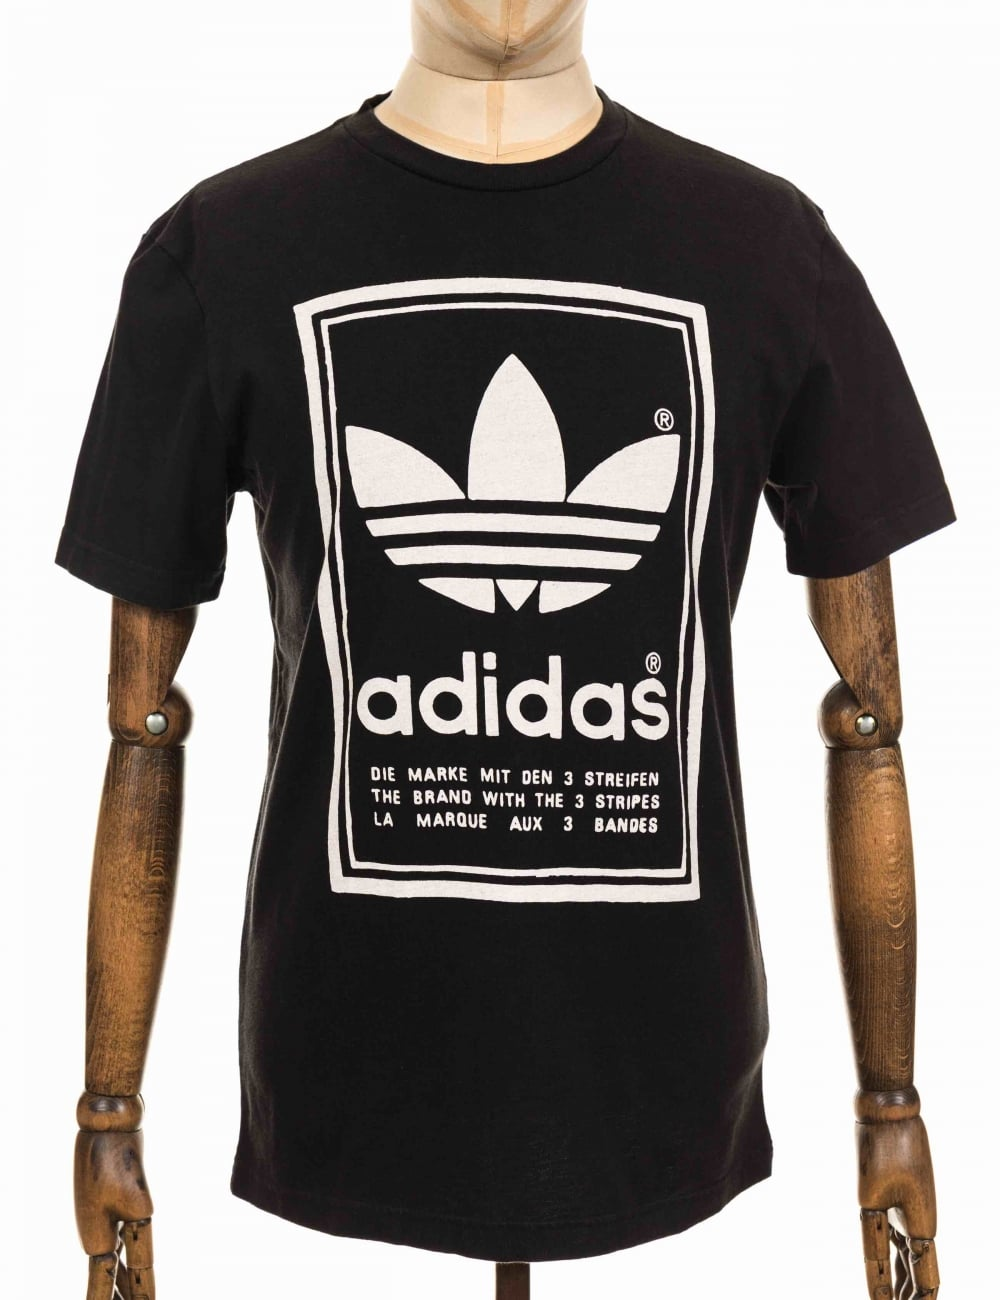 Adidas Archive Tee Fat Black Clothing Originals Japan From 1FFcWArq